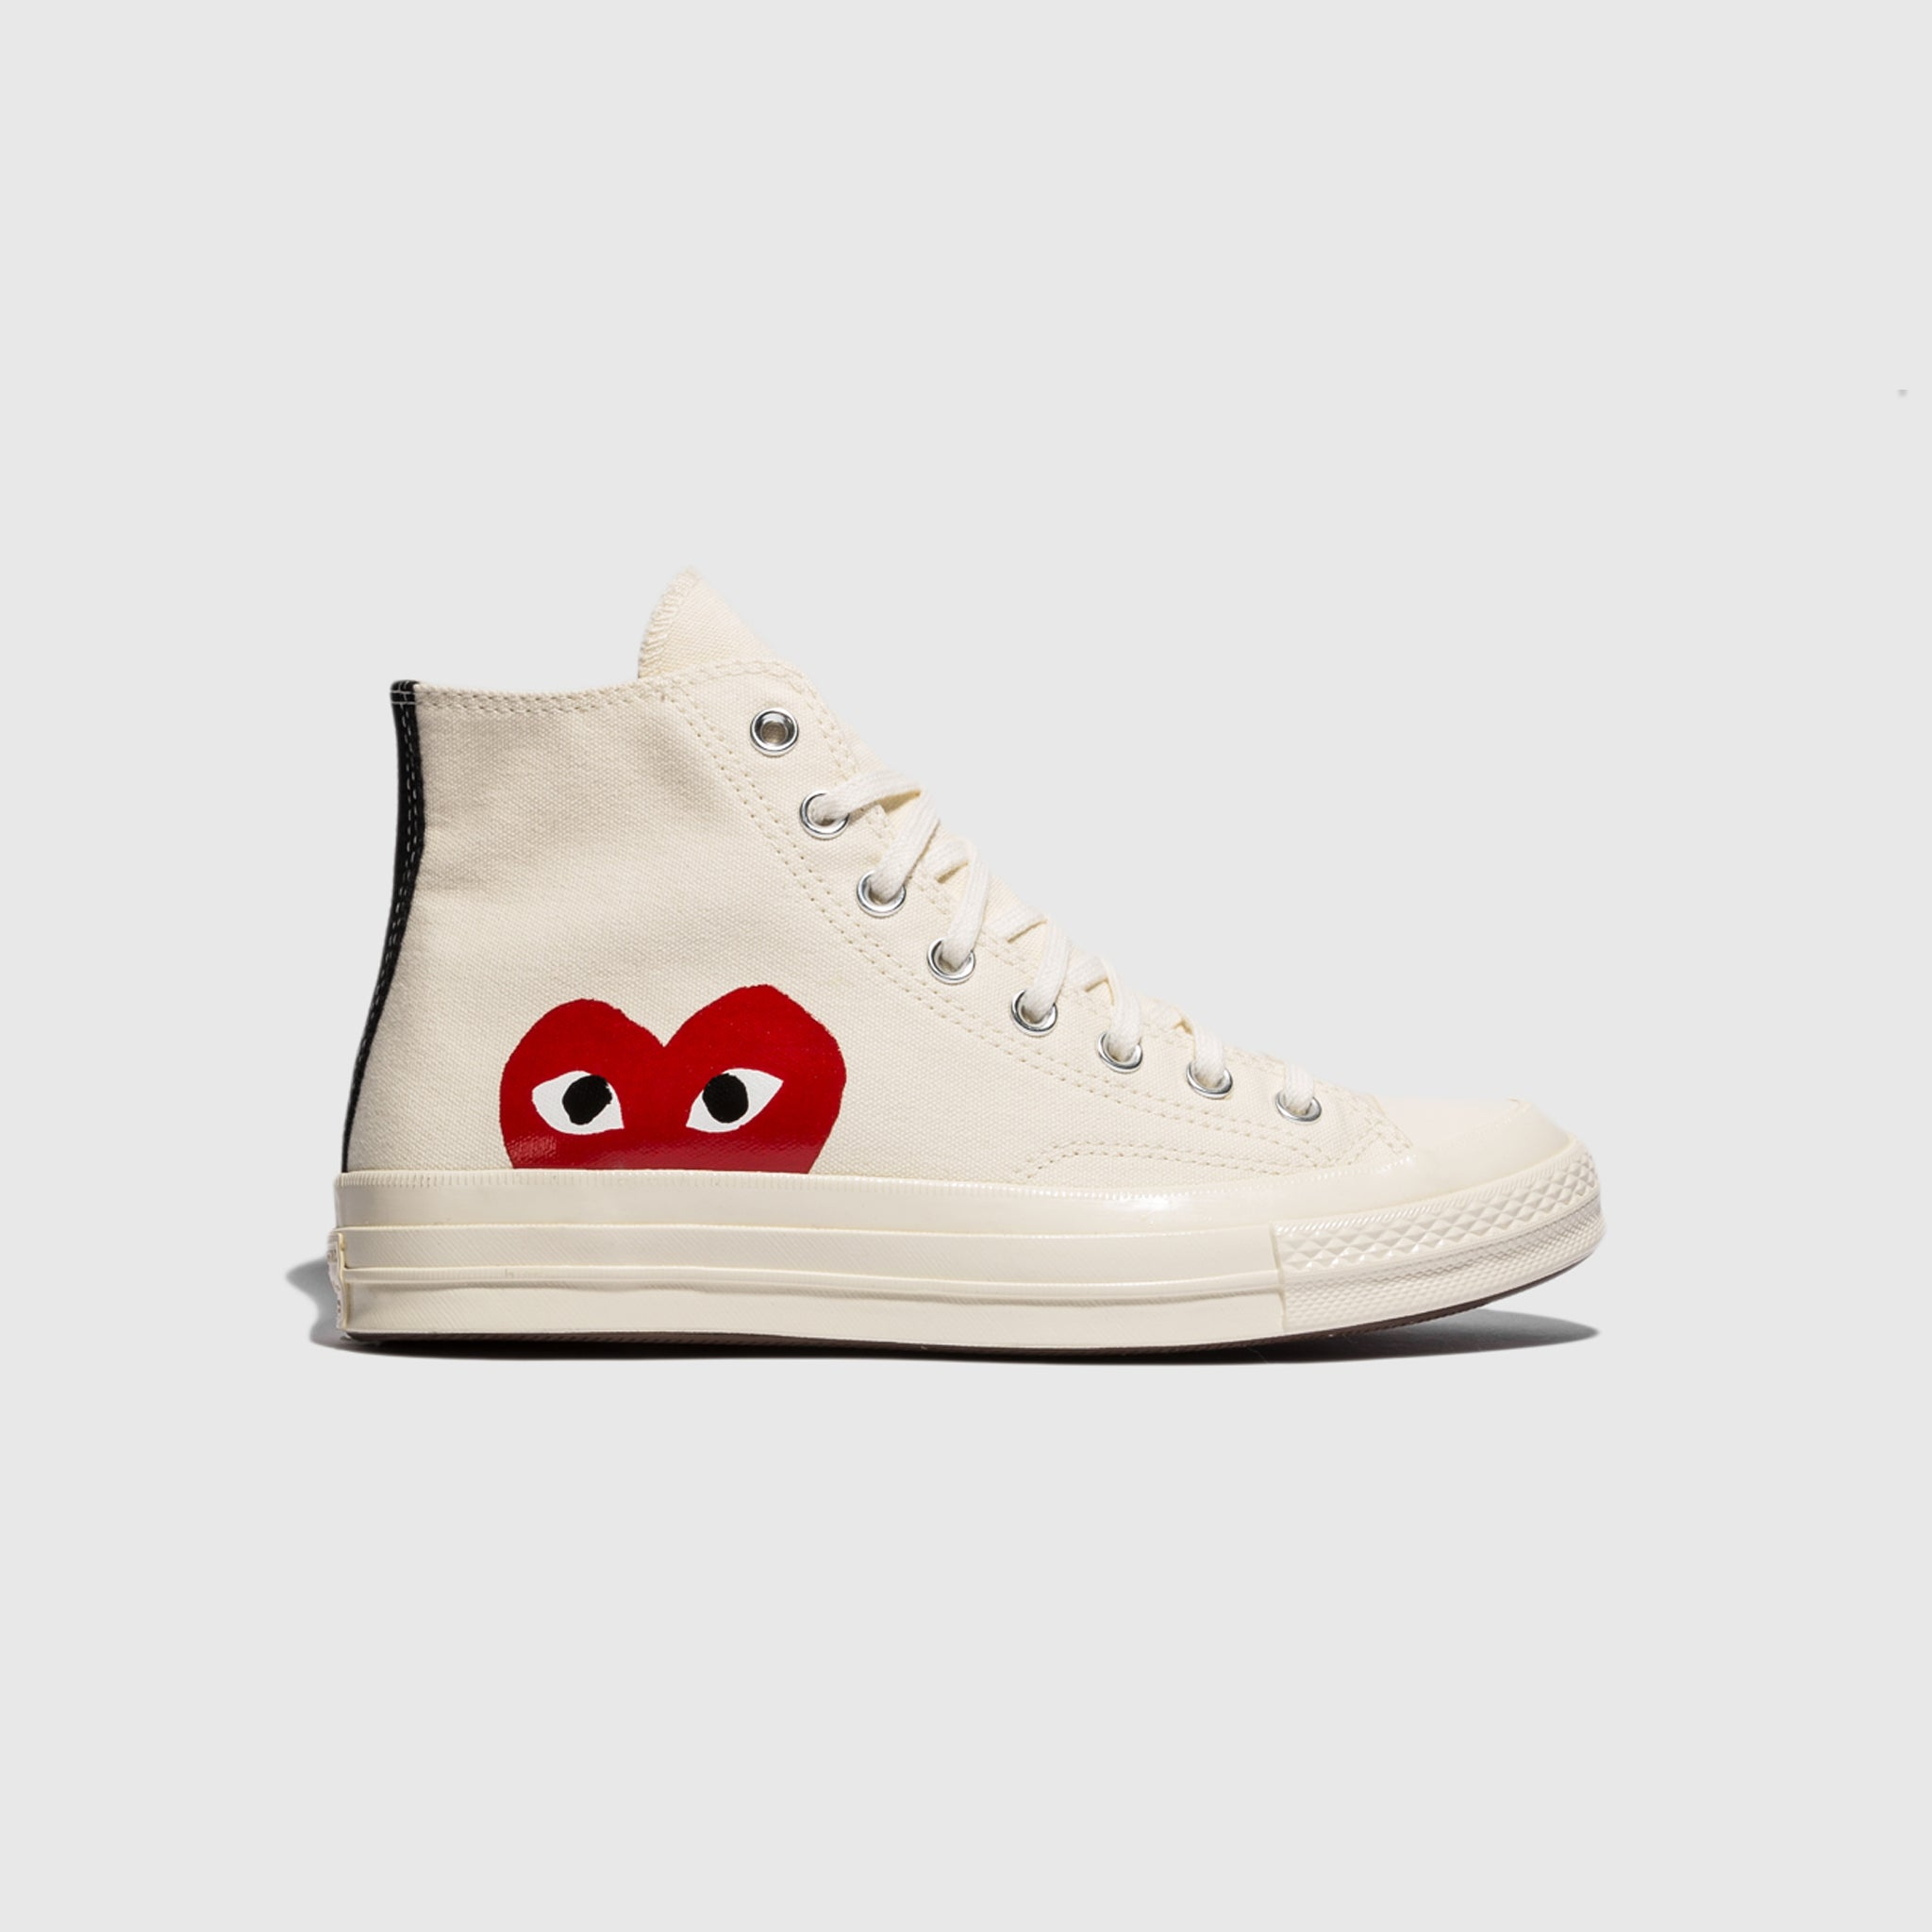 CDG PLAY CONVERSE CHUCK TAYLOR ALL STAR '70 HIGH – PACKER SHOES